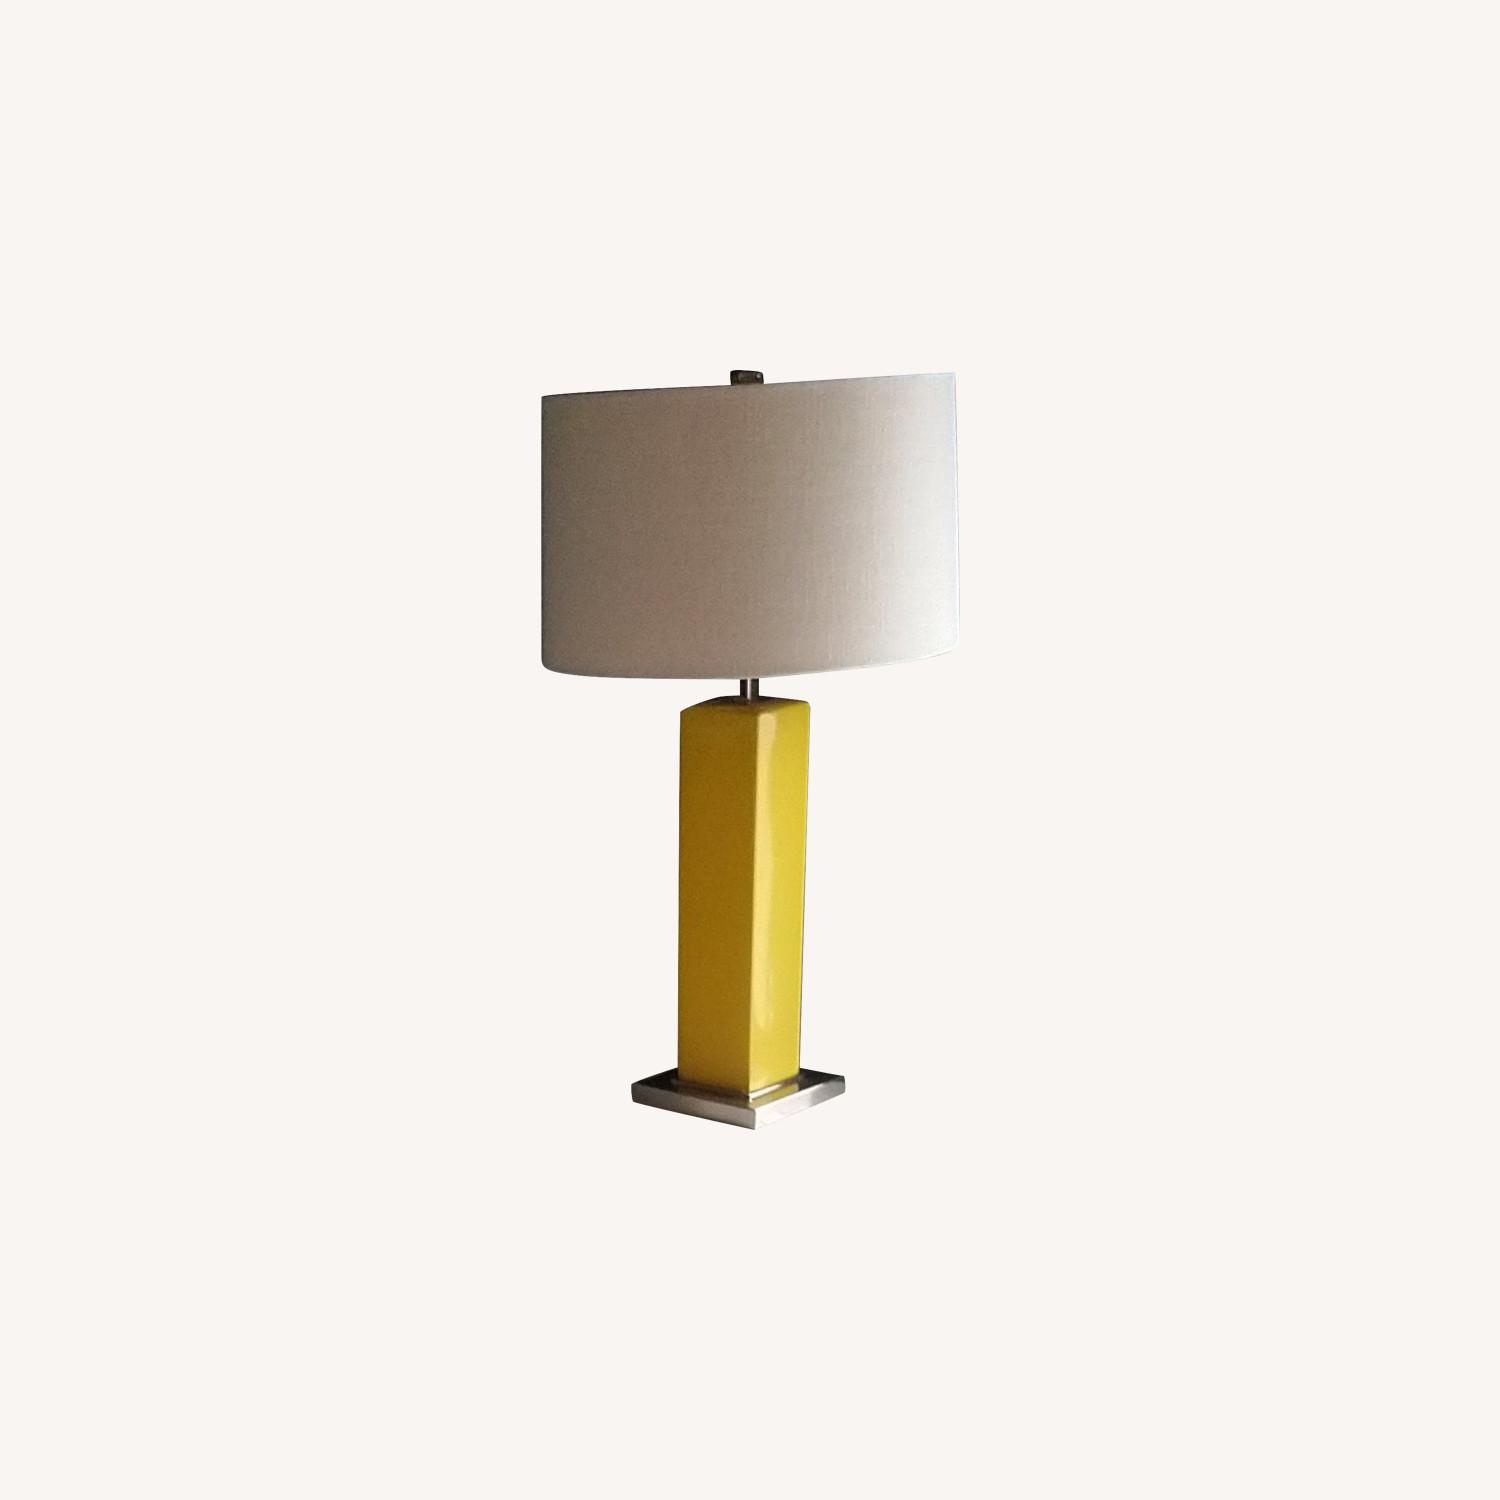 Simple Yellow Table Lamp with Square Base - image-0